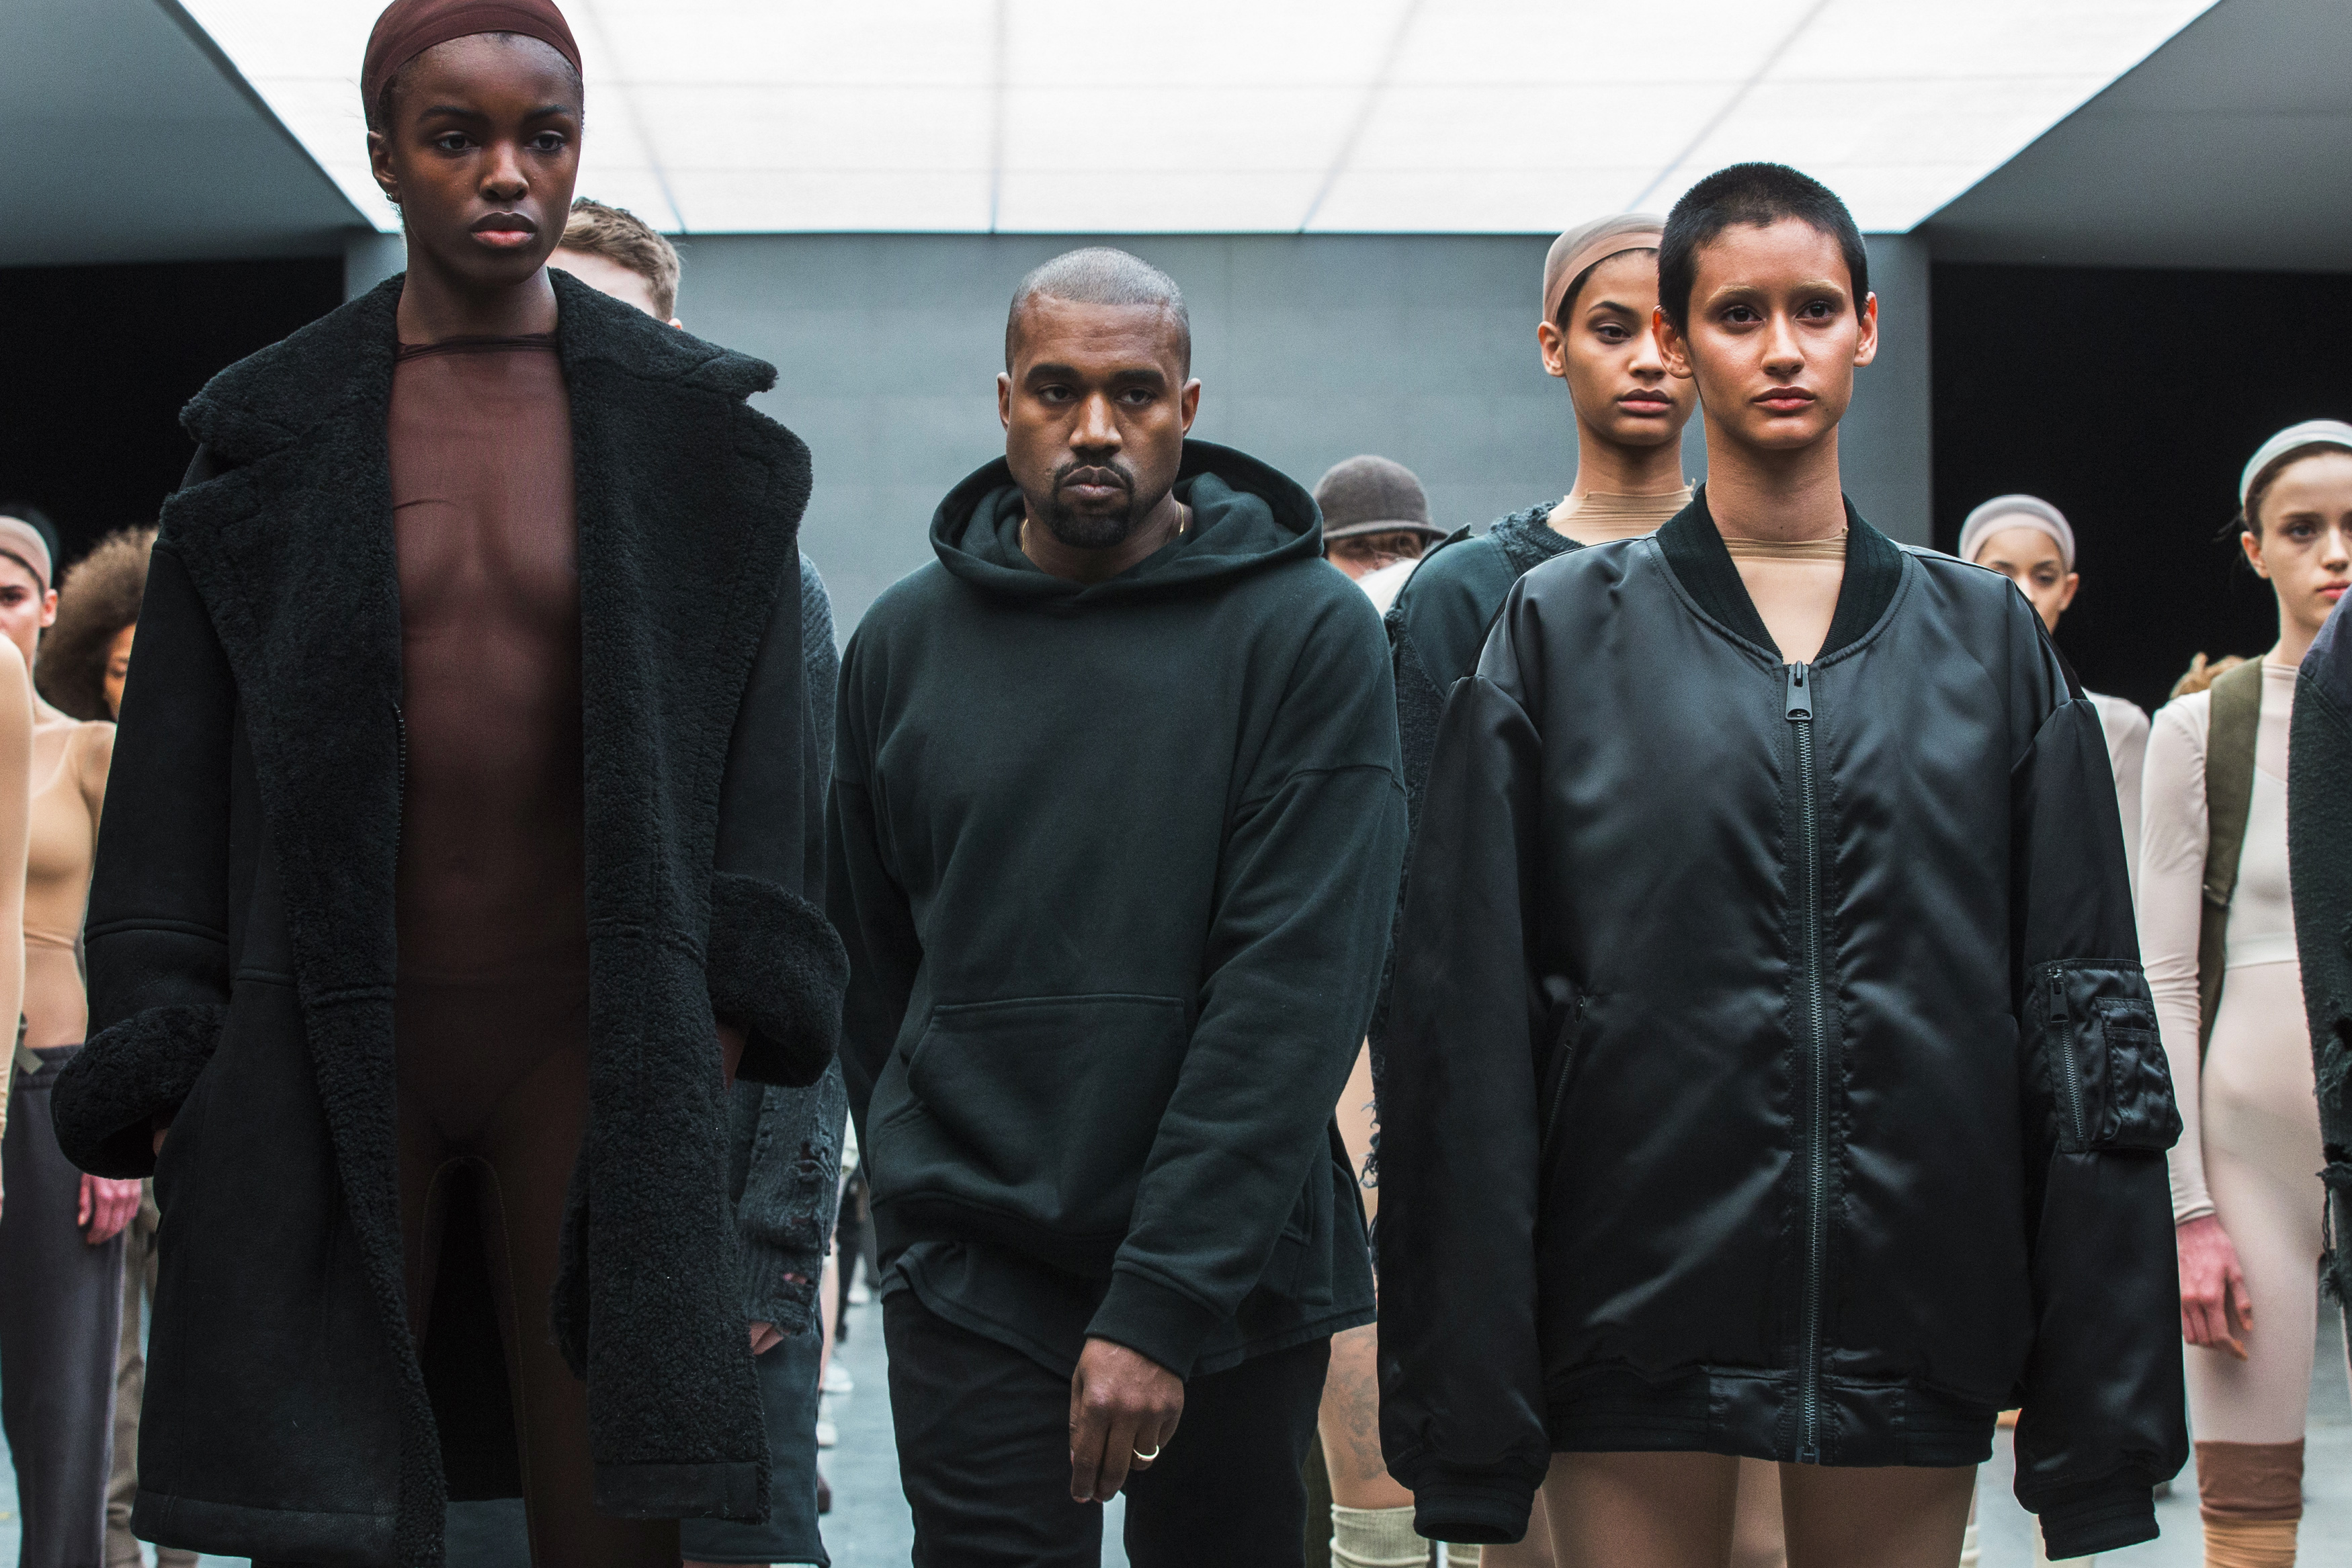 Singer Kanye West walks past models after presenting his Fall/Winter 2015 partnership line with Adidas at New York Fashion Week February 12, 2015. REUTERS/Lucas Jackson (UNITED STATES - Tags: FASHION SOCIETY ENTERTAINMENT) - GM1EB2D0NWX01